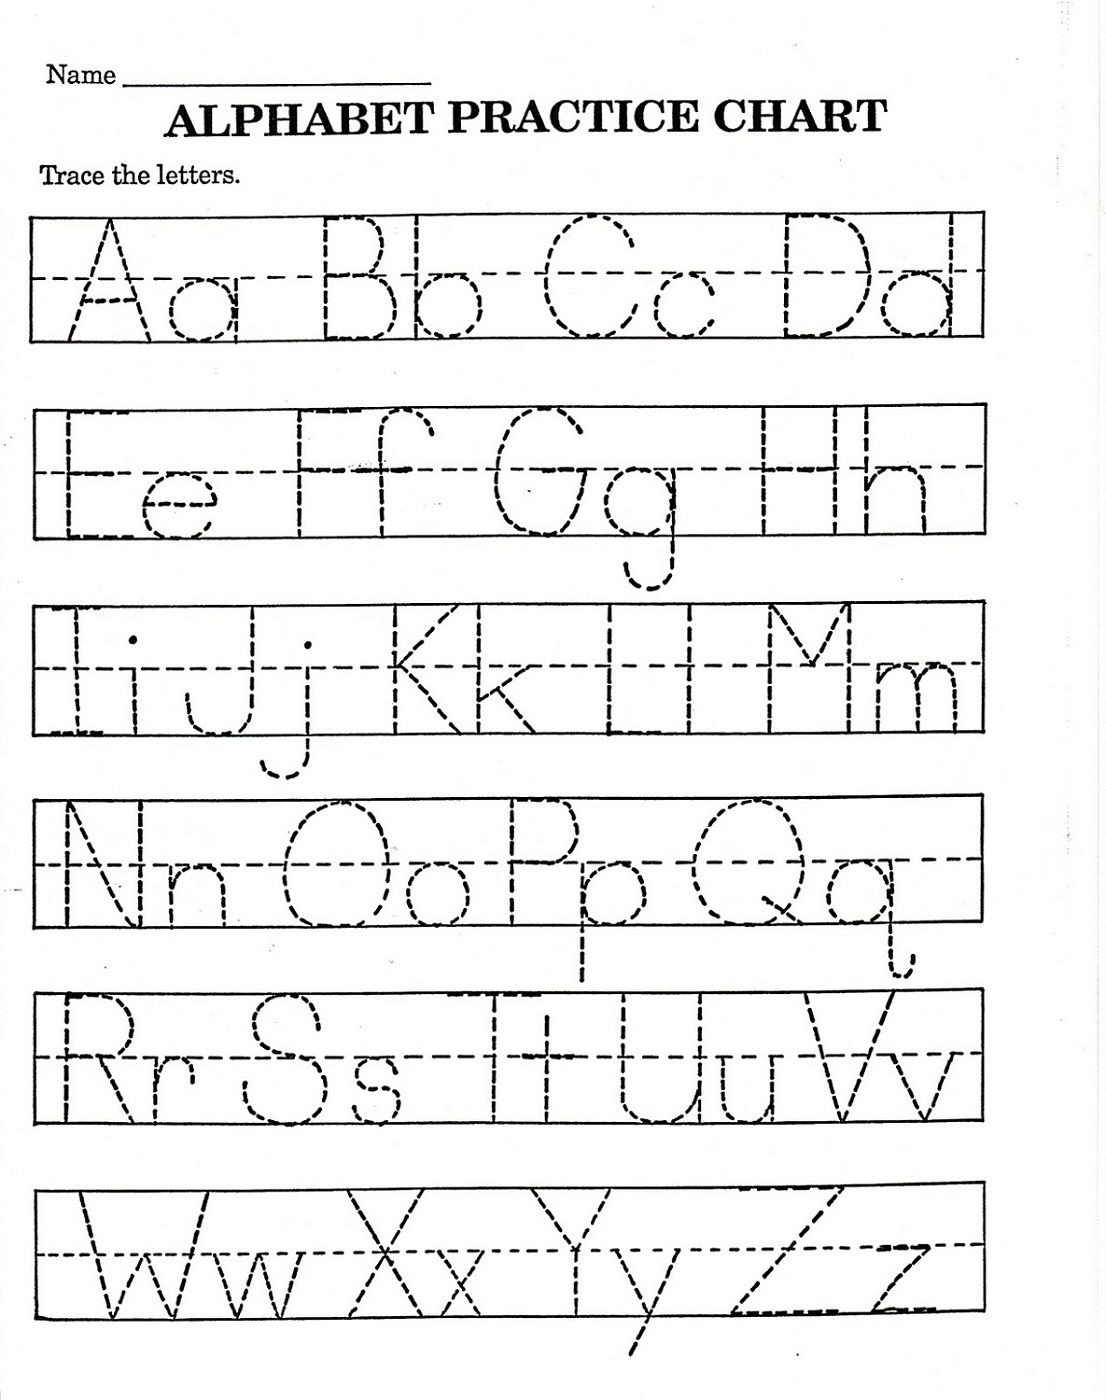 Trace Letter Worksheets Free | Alphabet Tracing Worksheets with Trace Letter A Worksheets Free